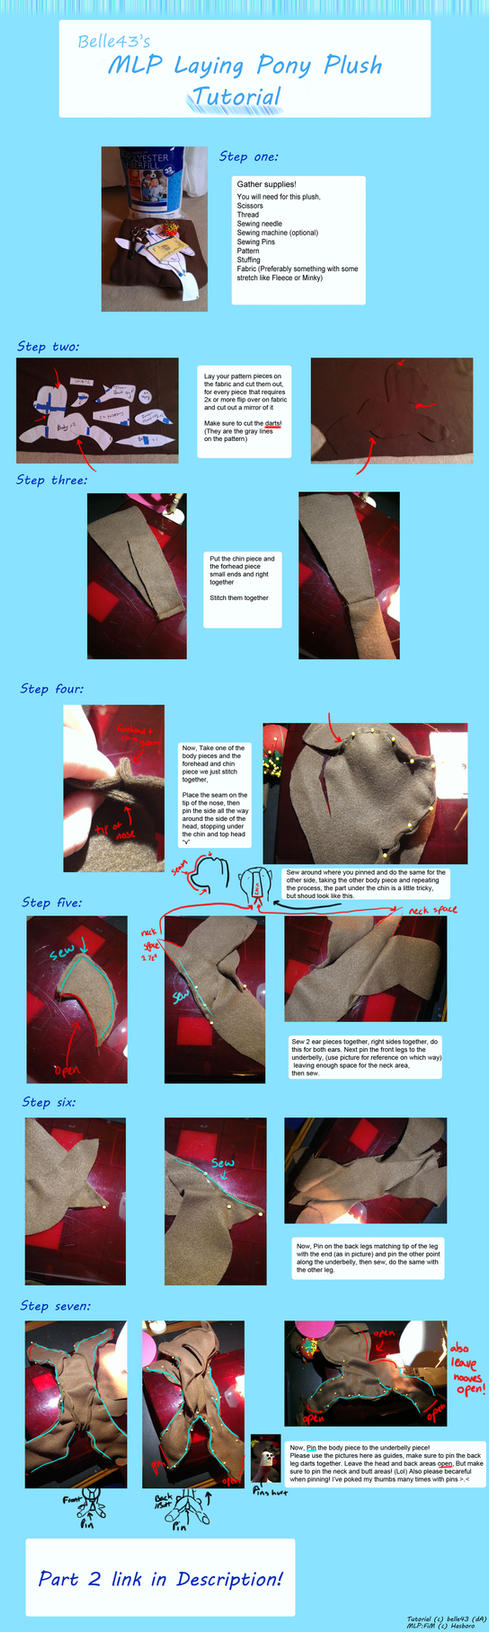 MLP Laying Pony Plush Tutorial by Belle43